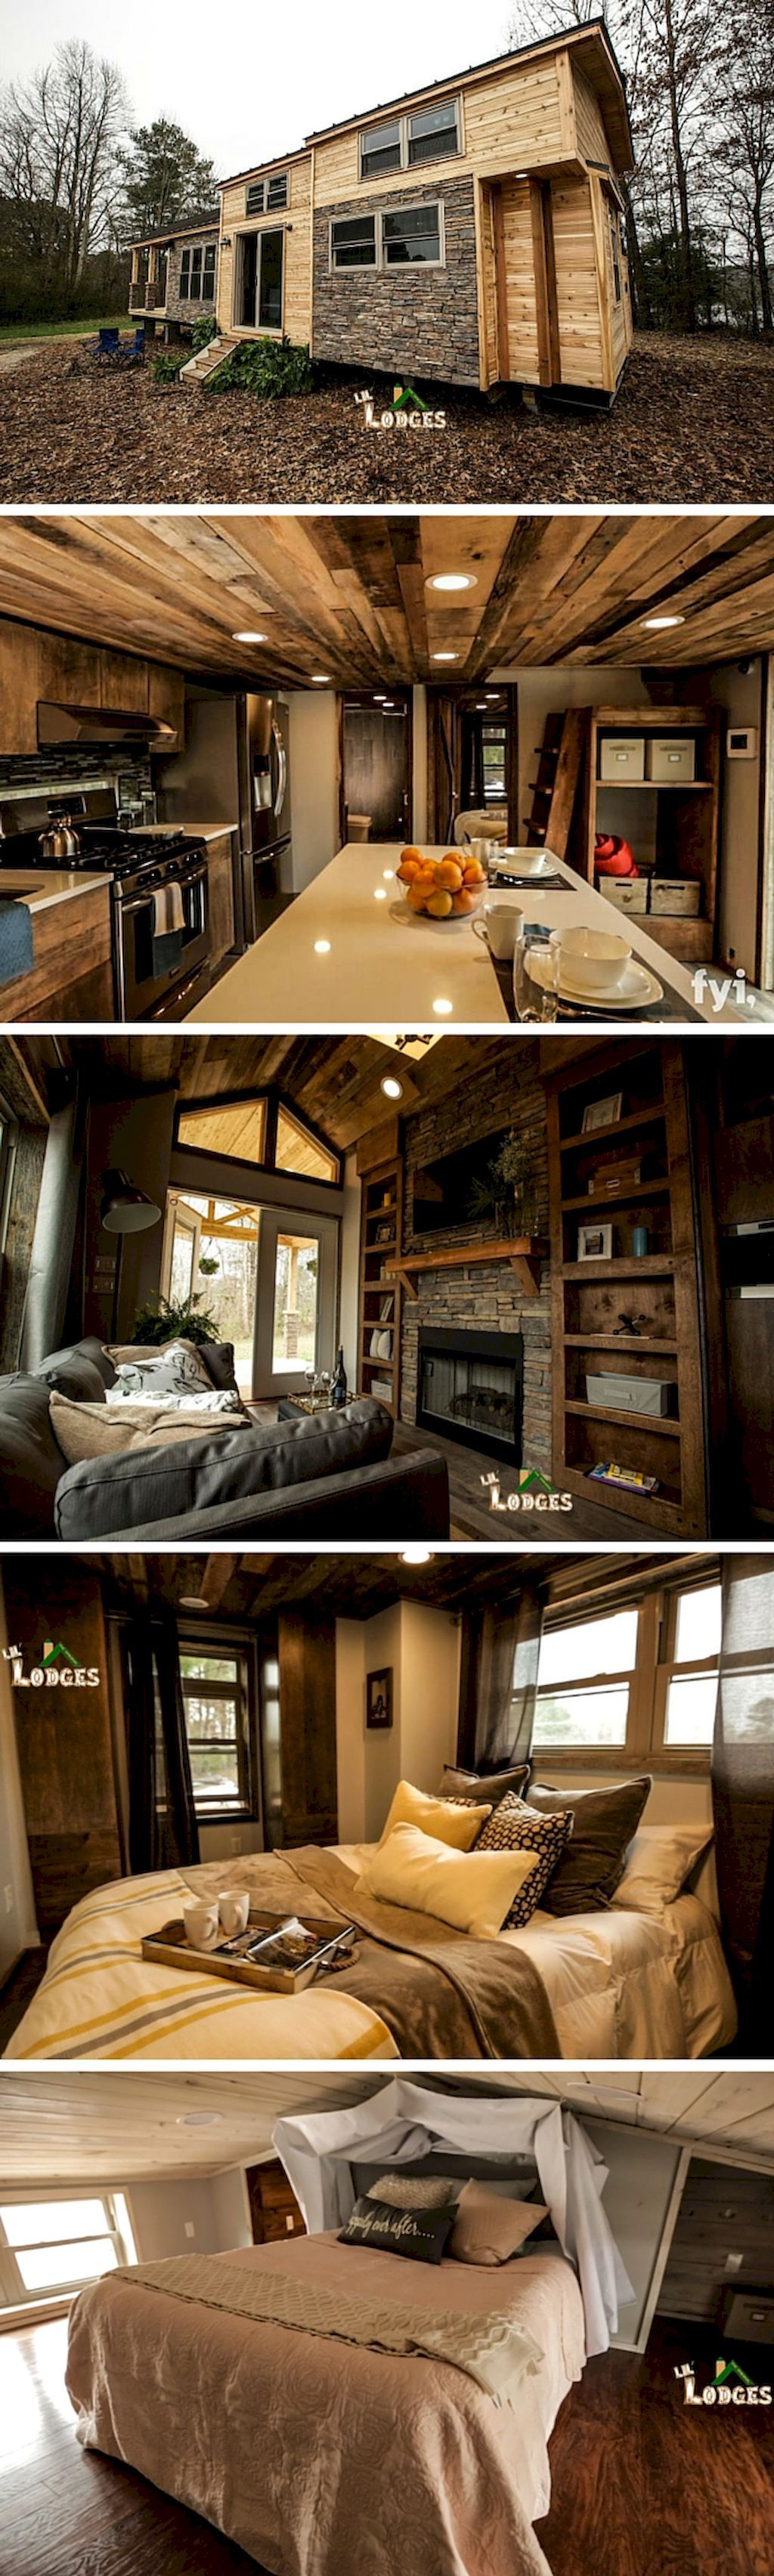 Adorable 60 Smart Tiny House Ideas and